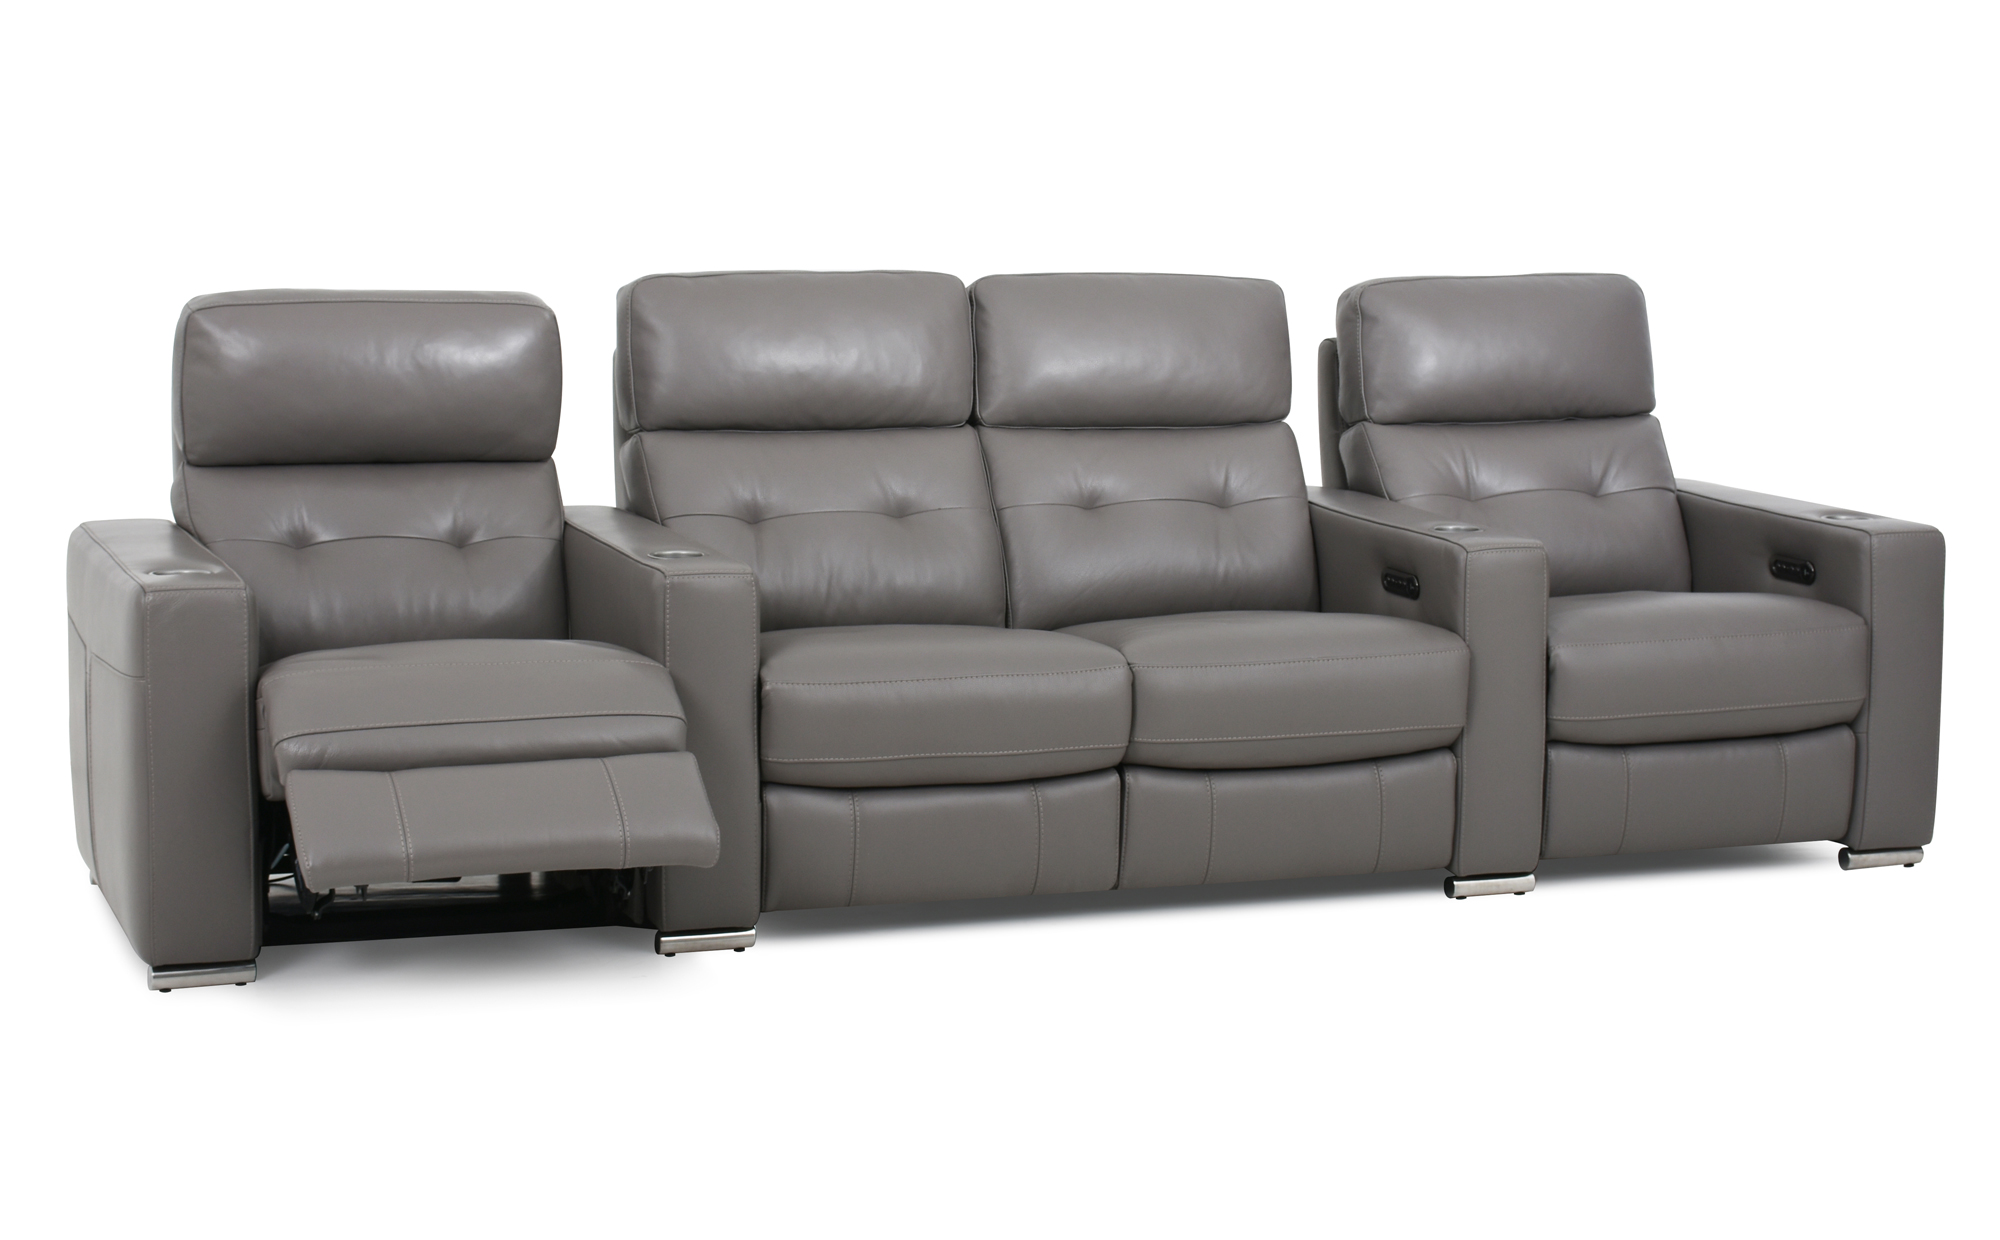 FrontRow™ Serenity Powered Recliners